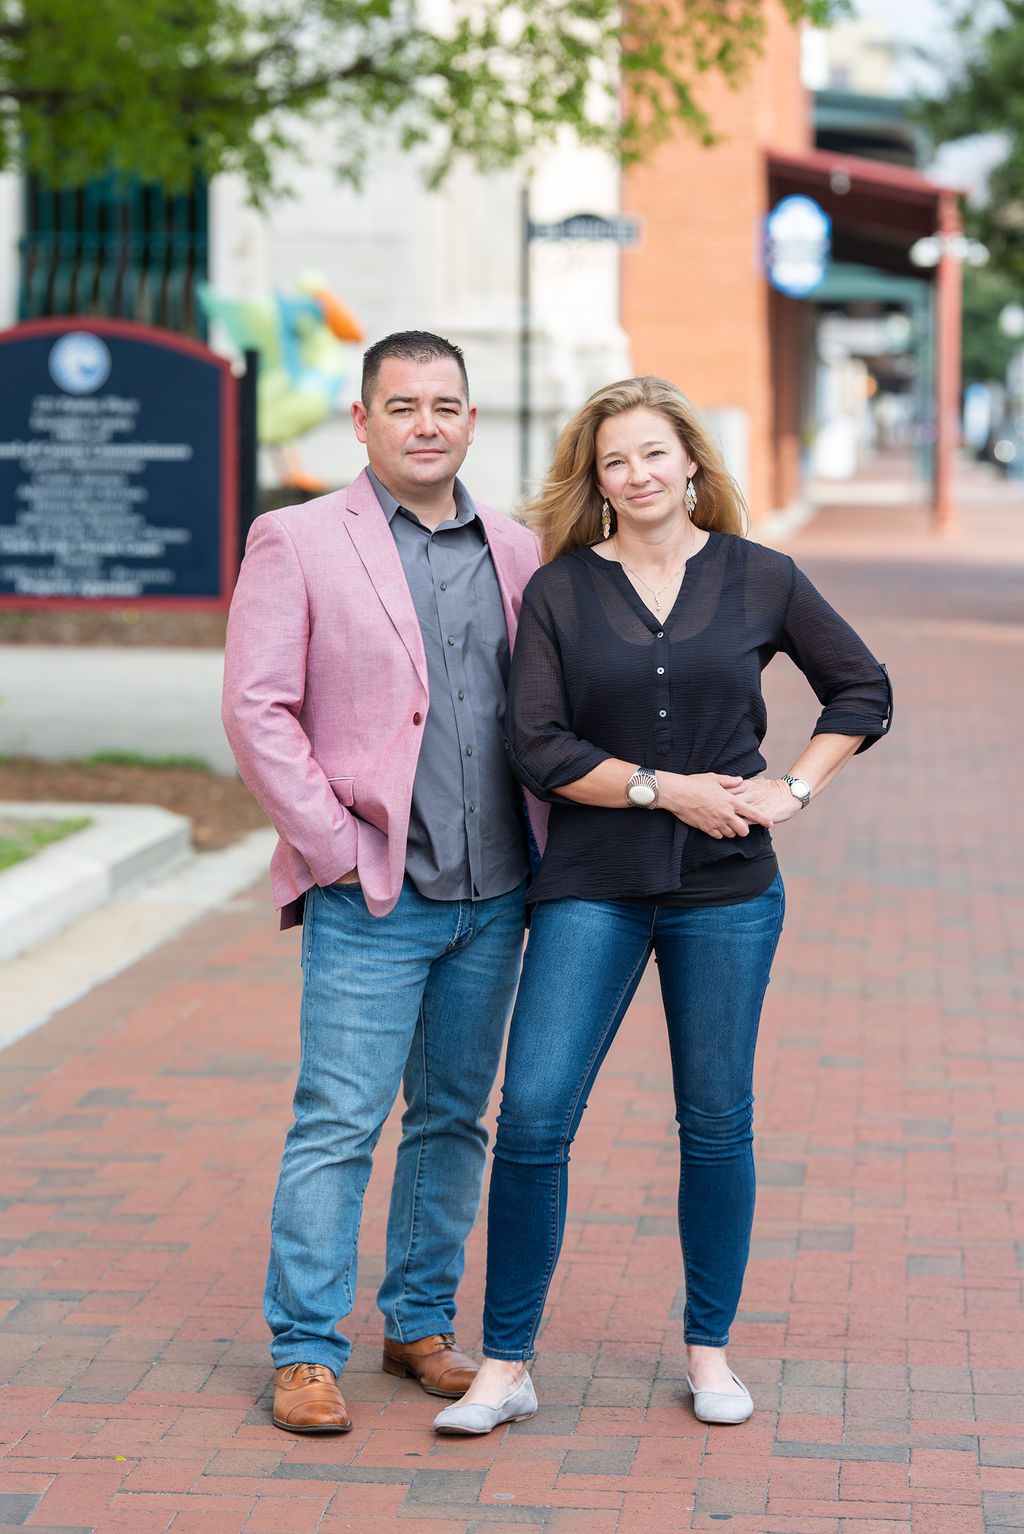 Kristen and Justin Deese; owners of Business Spouse posing in Downtown Pensacola